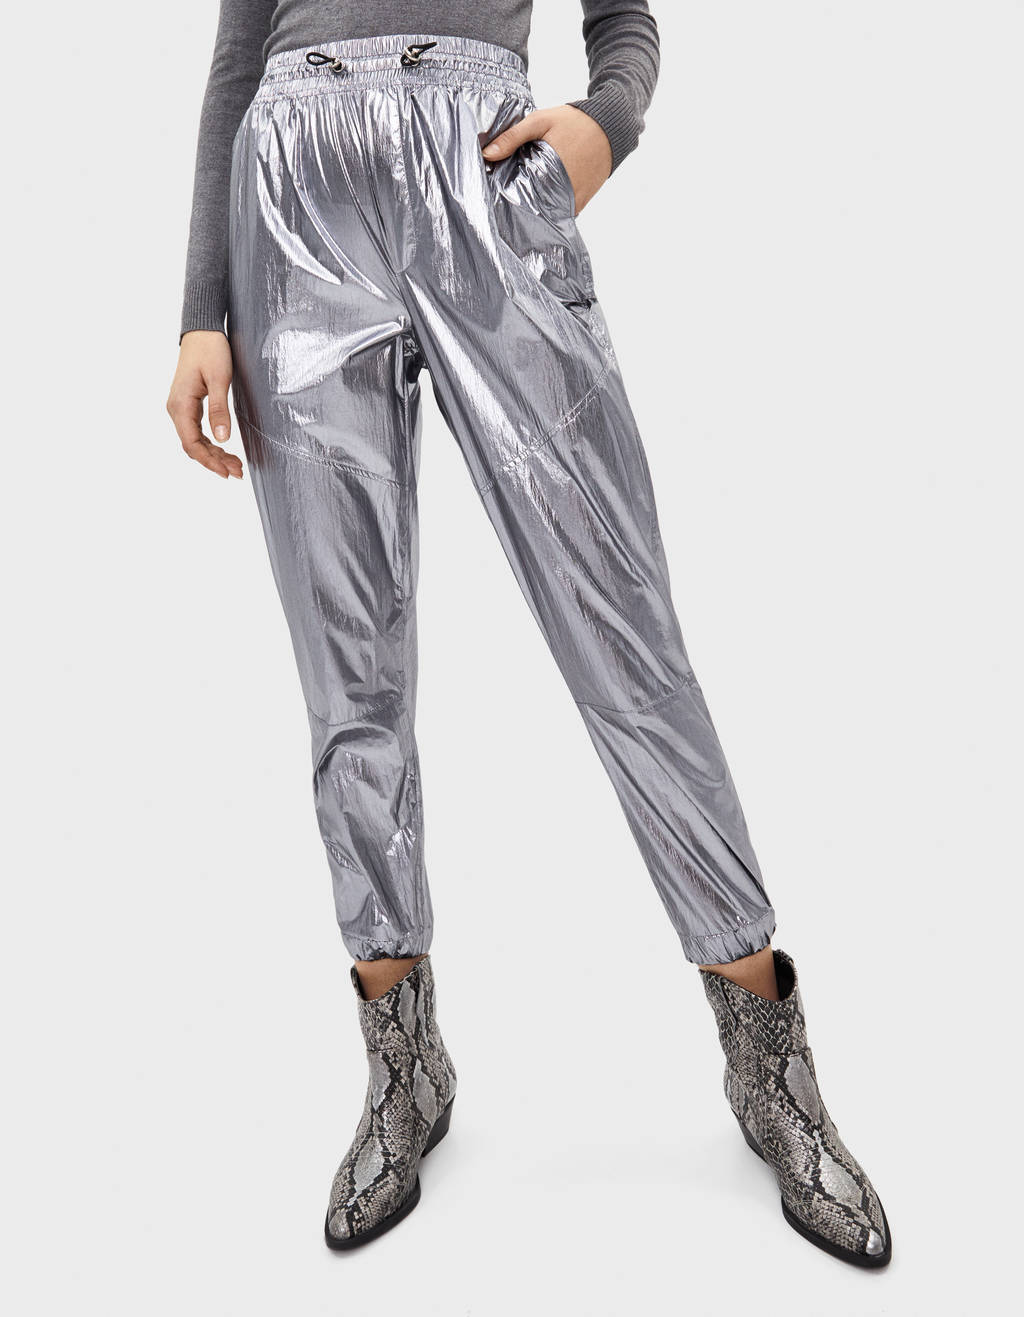 Metallic jogging trousers